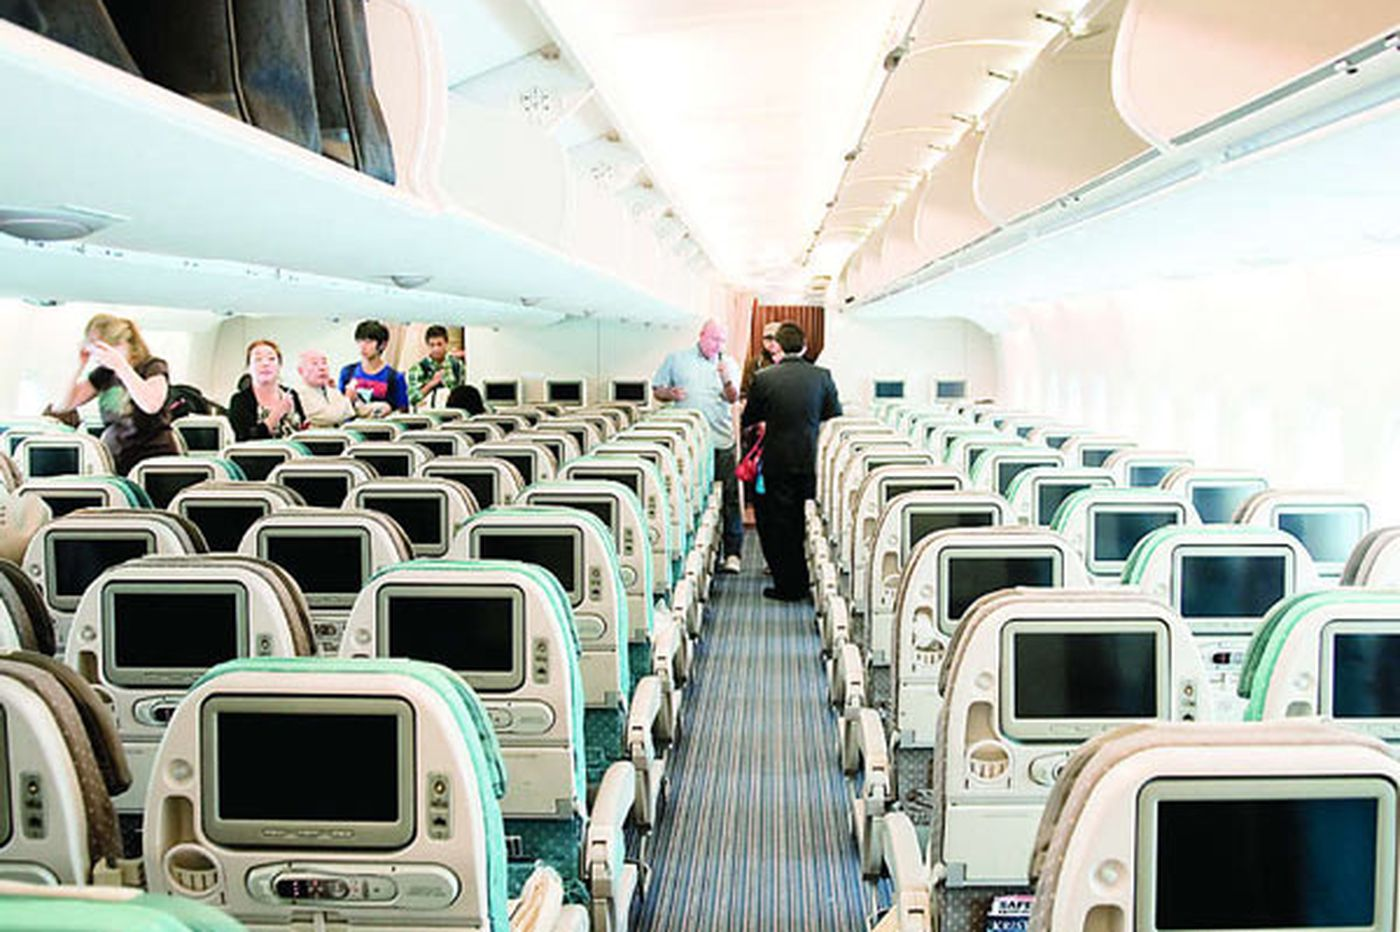 GreenSpace: Tips for combatting germs on airplanes